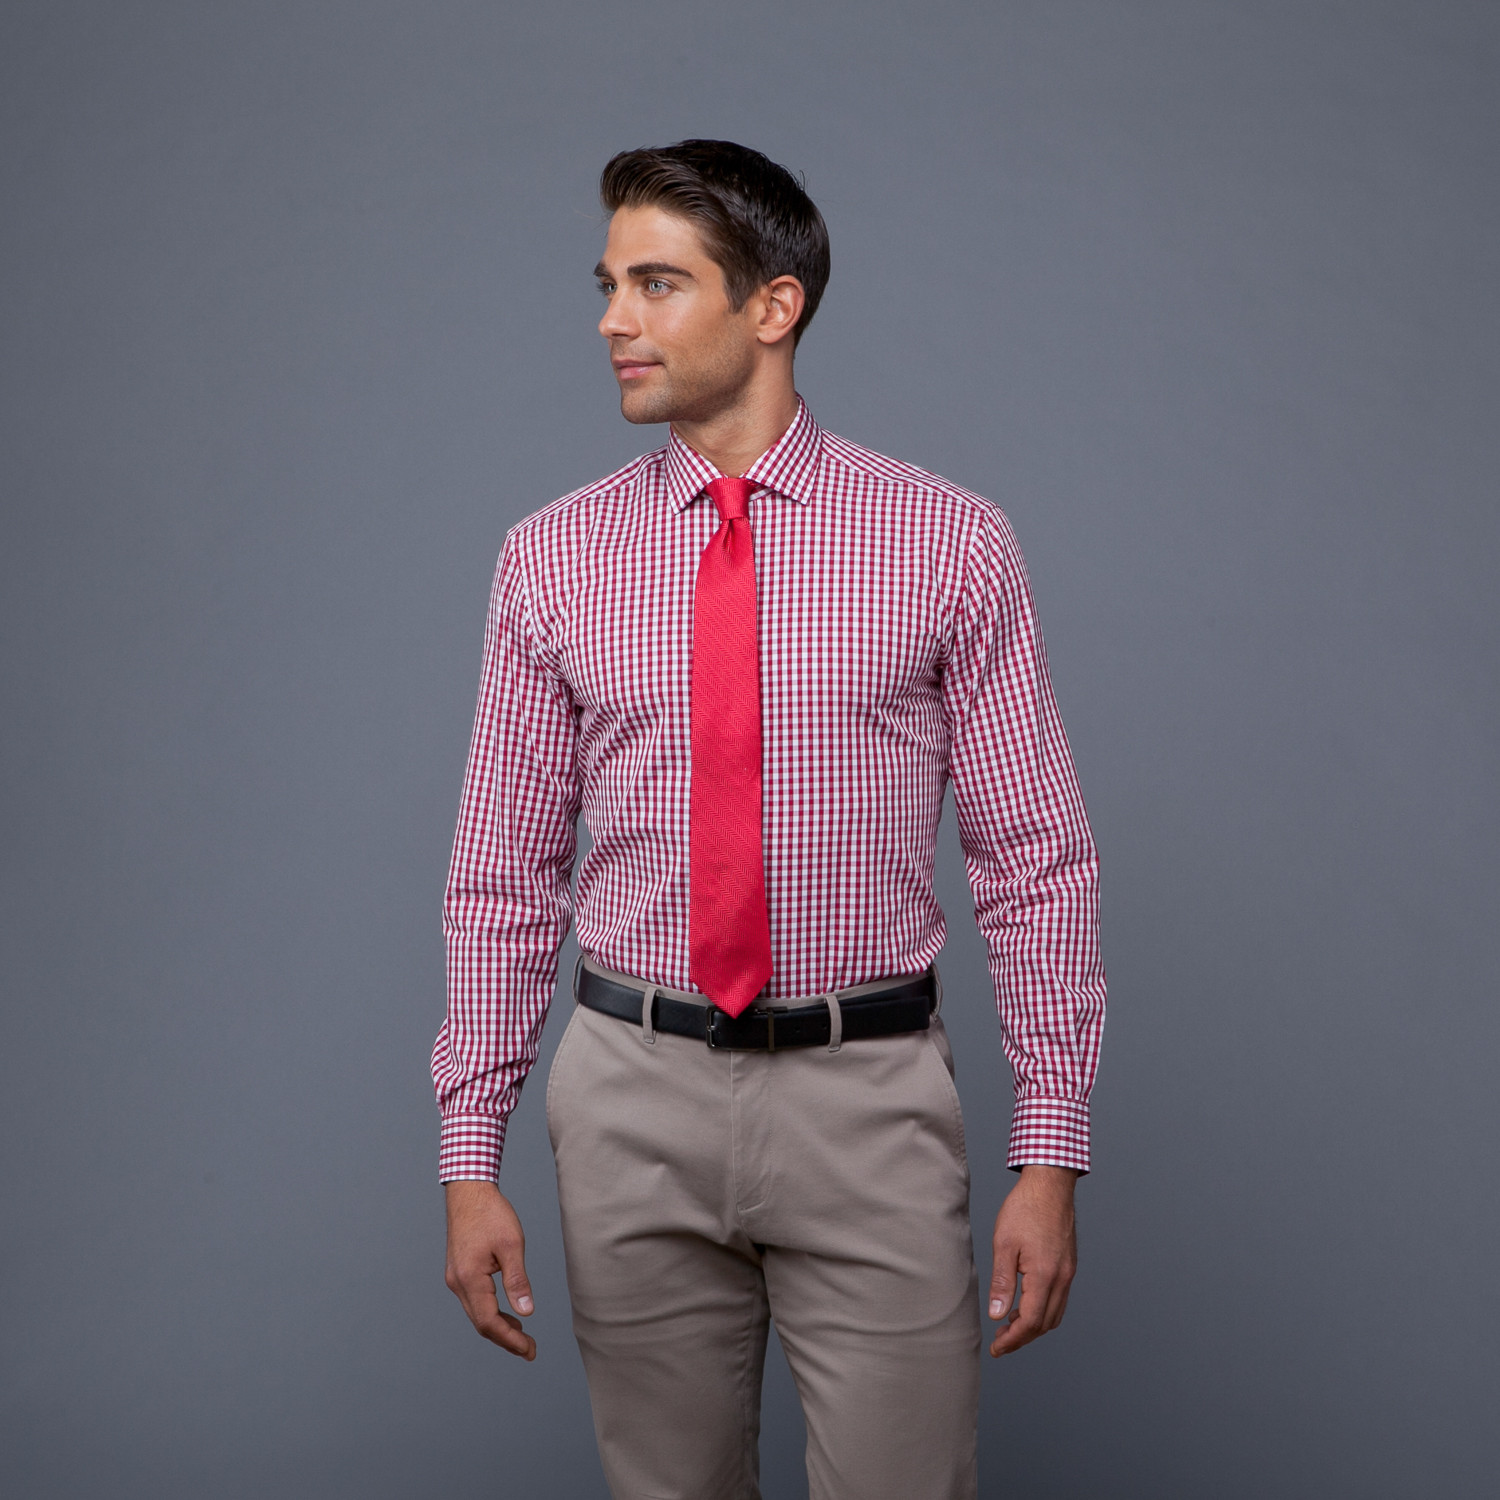 red gingham shirt and tie